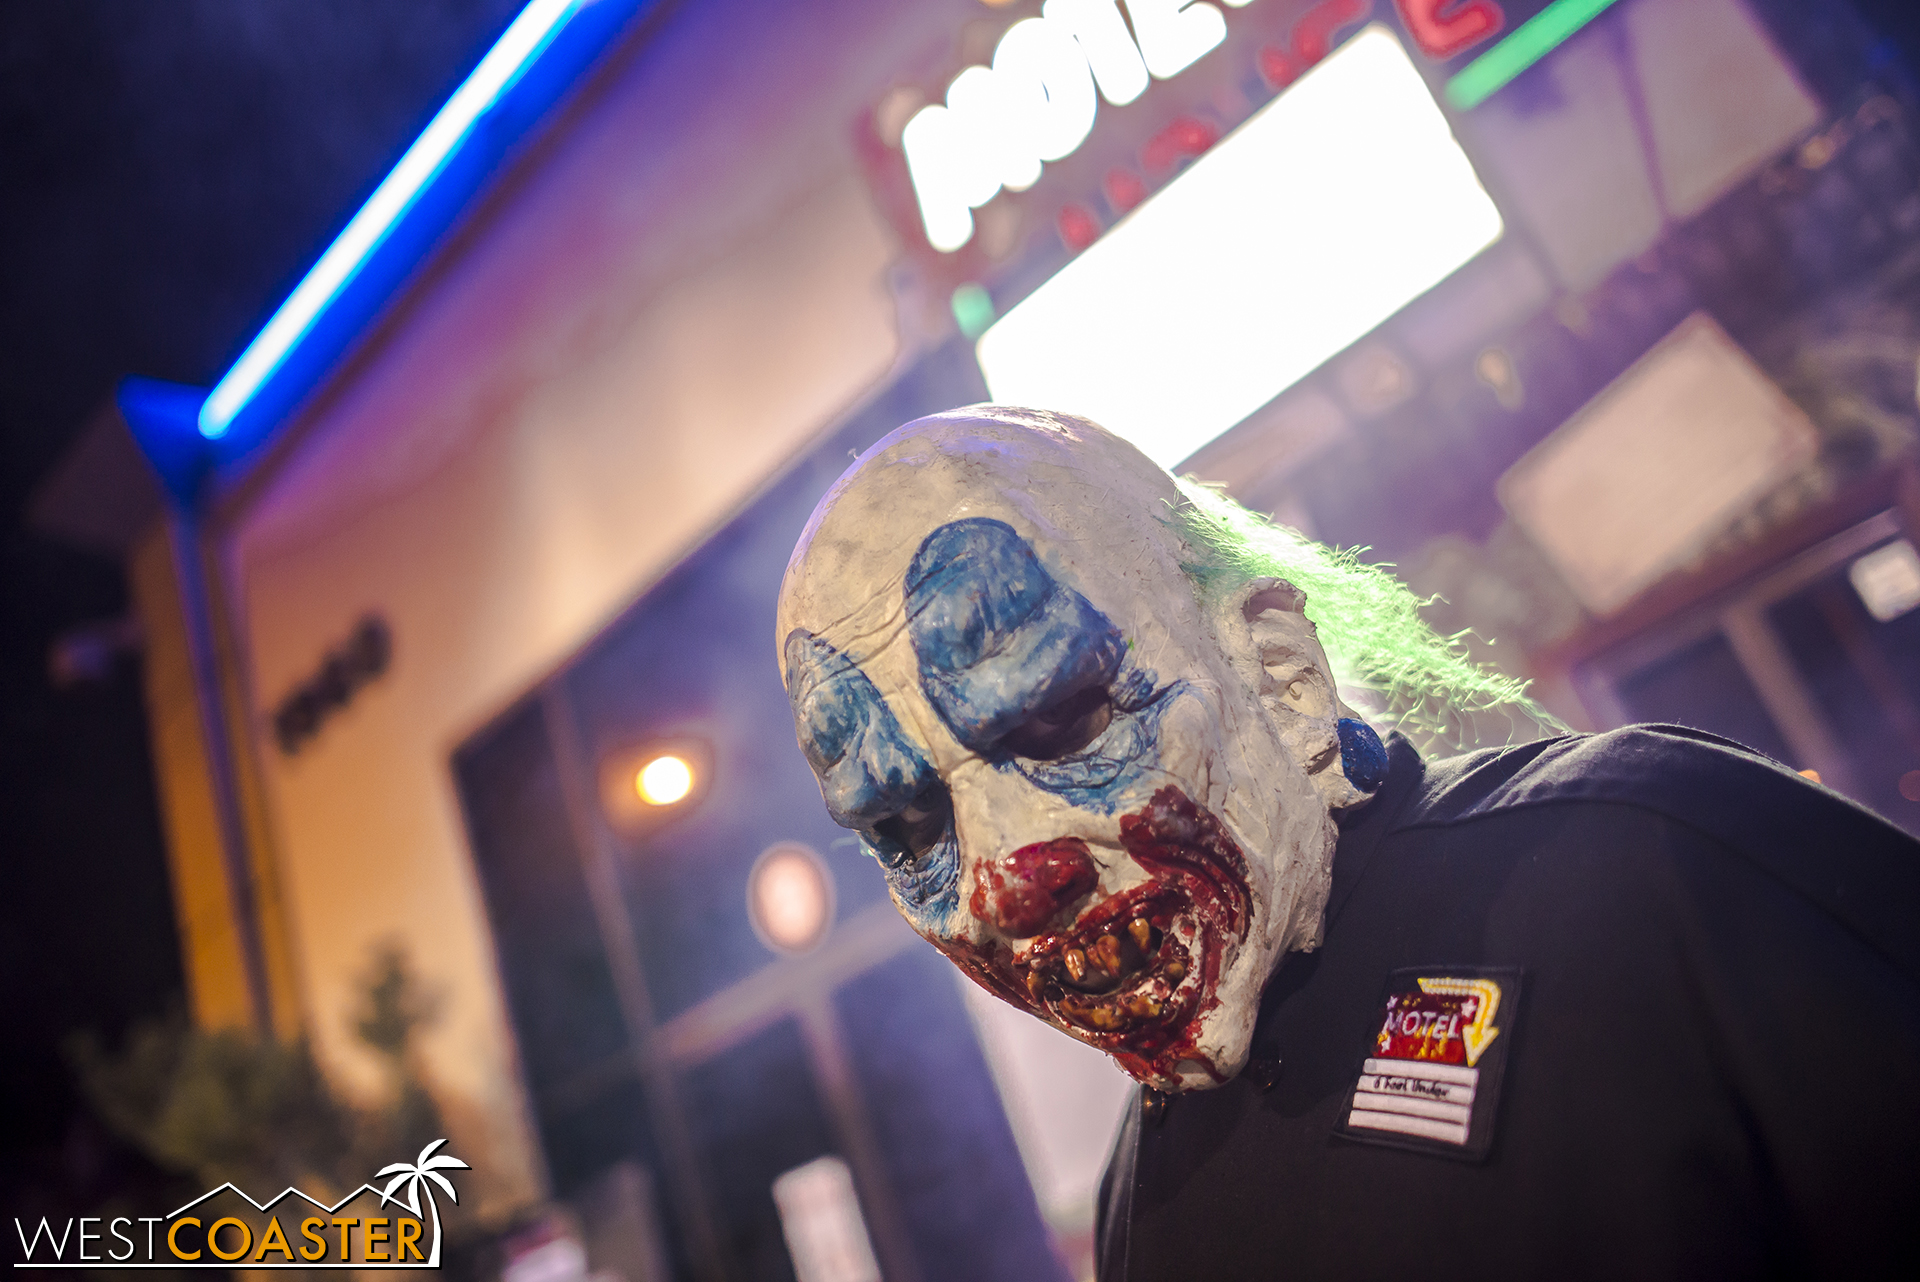 And, perhaps capitalizing on the current creepy clown hysteria, he adds a few scares to unsuspecting passers-by too!